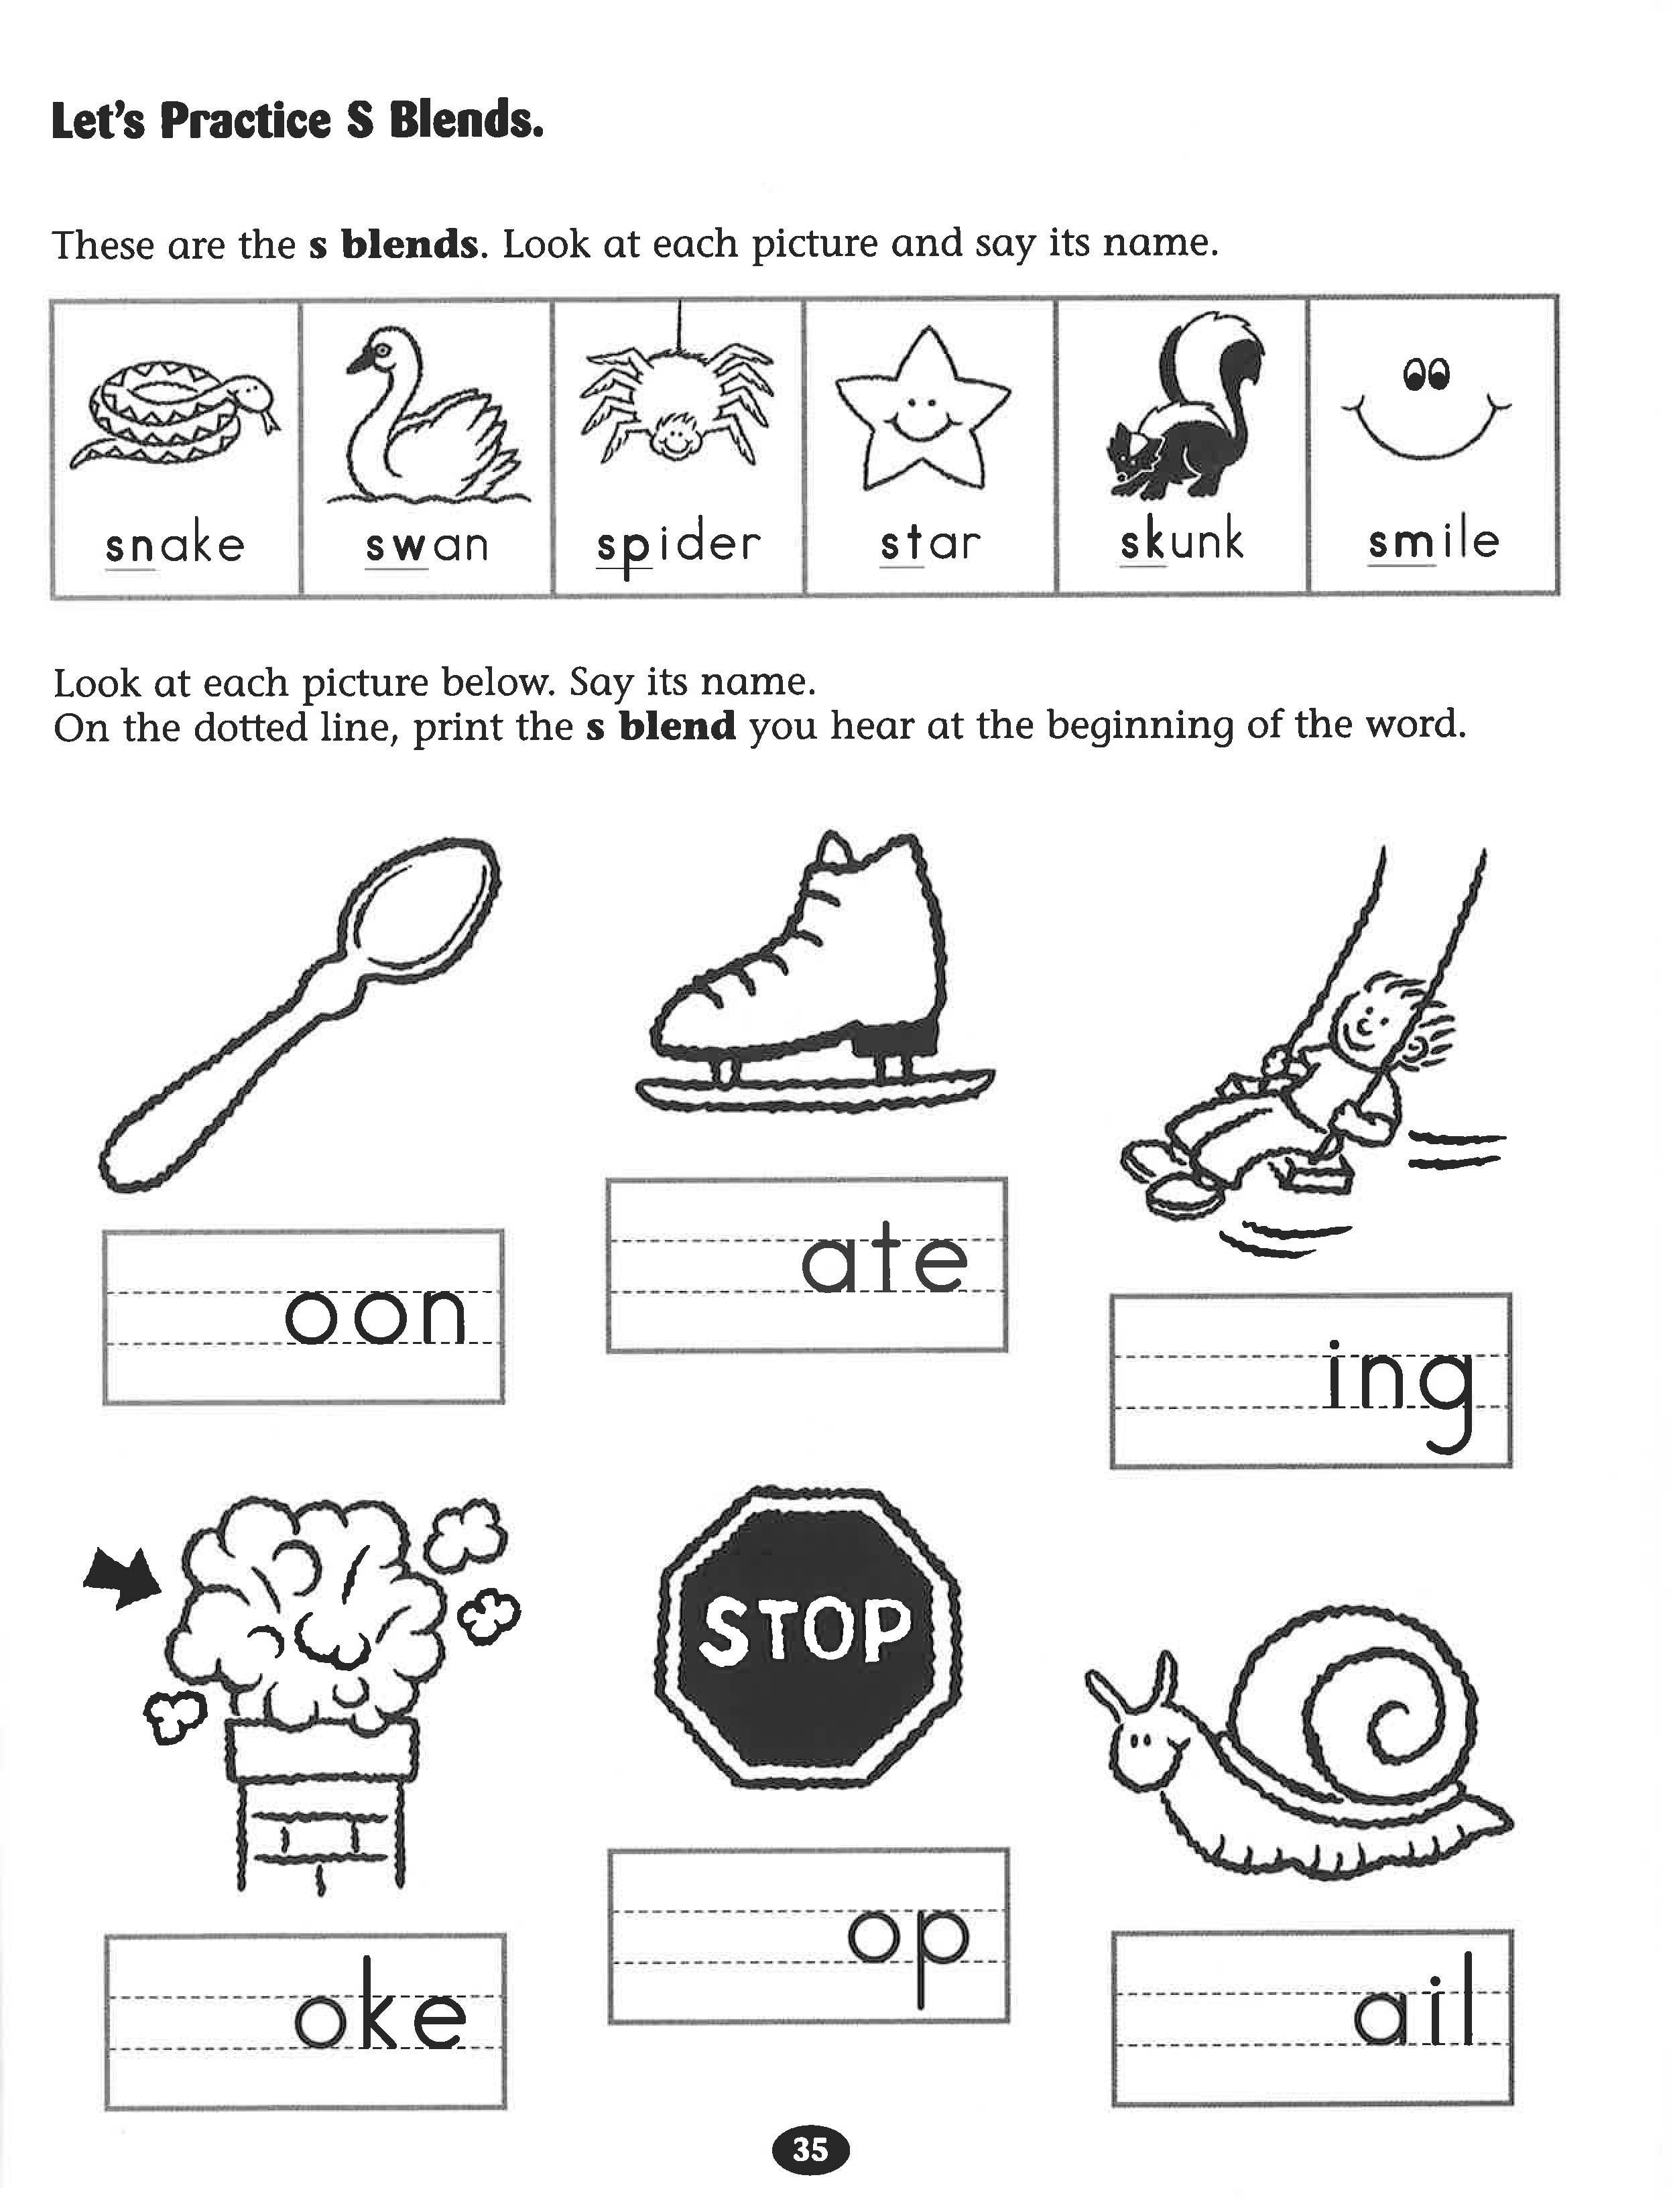 worksheet S Blends Worksheet lets practice s blends worksheet rockin reading tips and worksheet